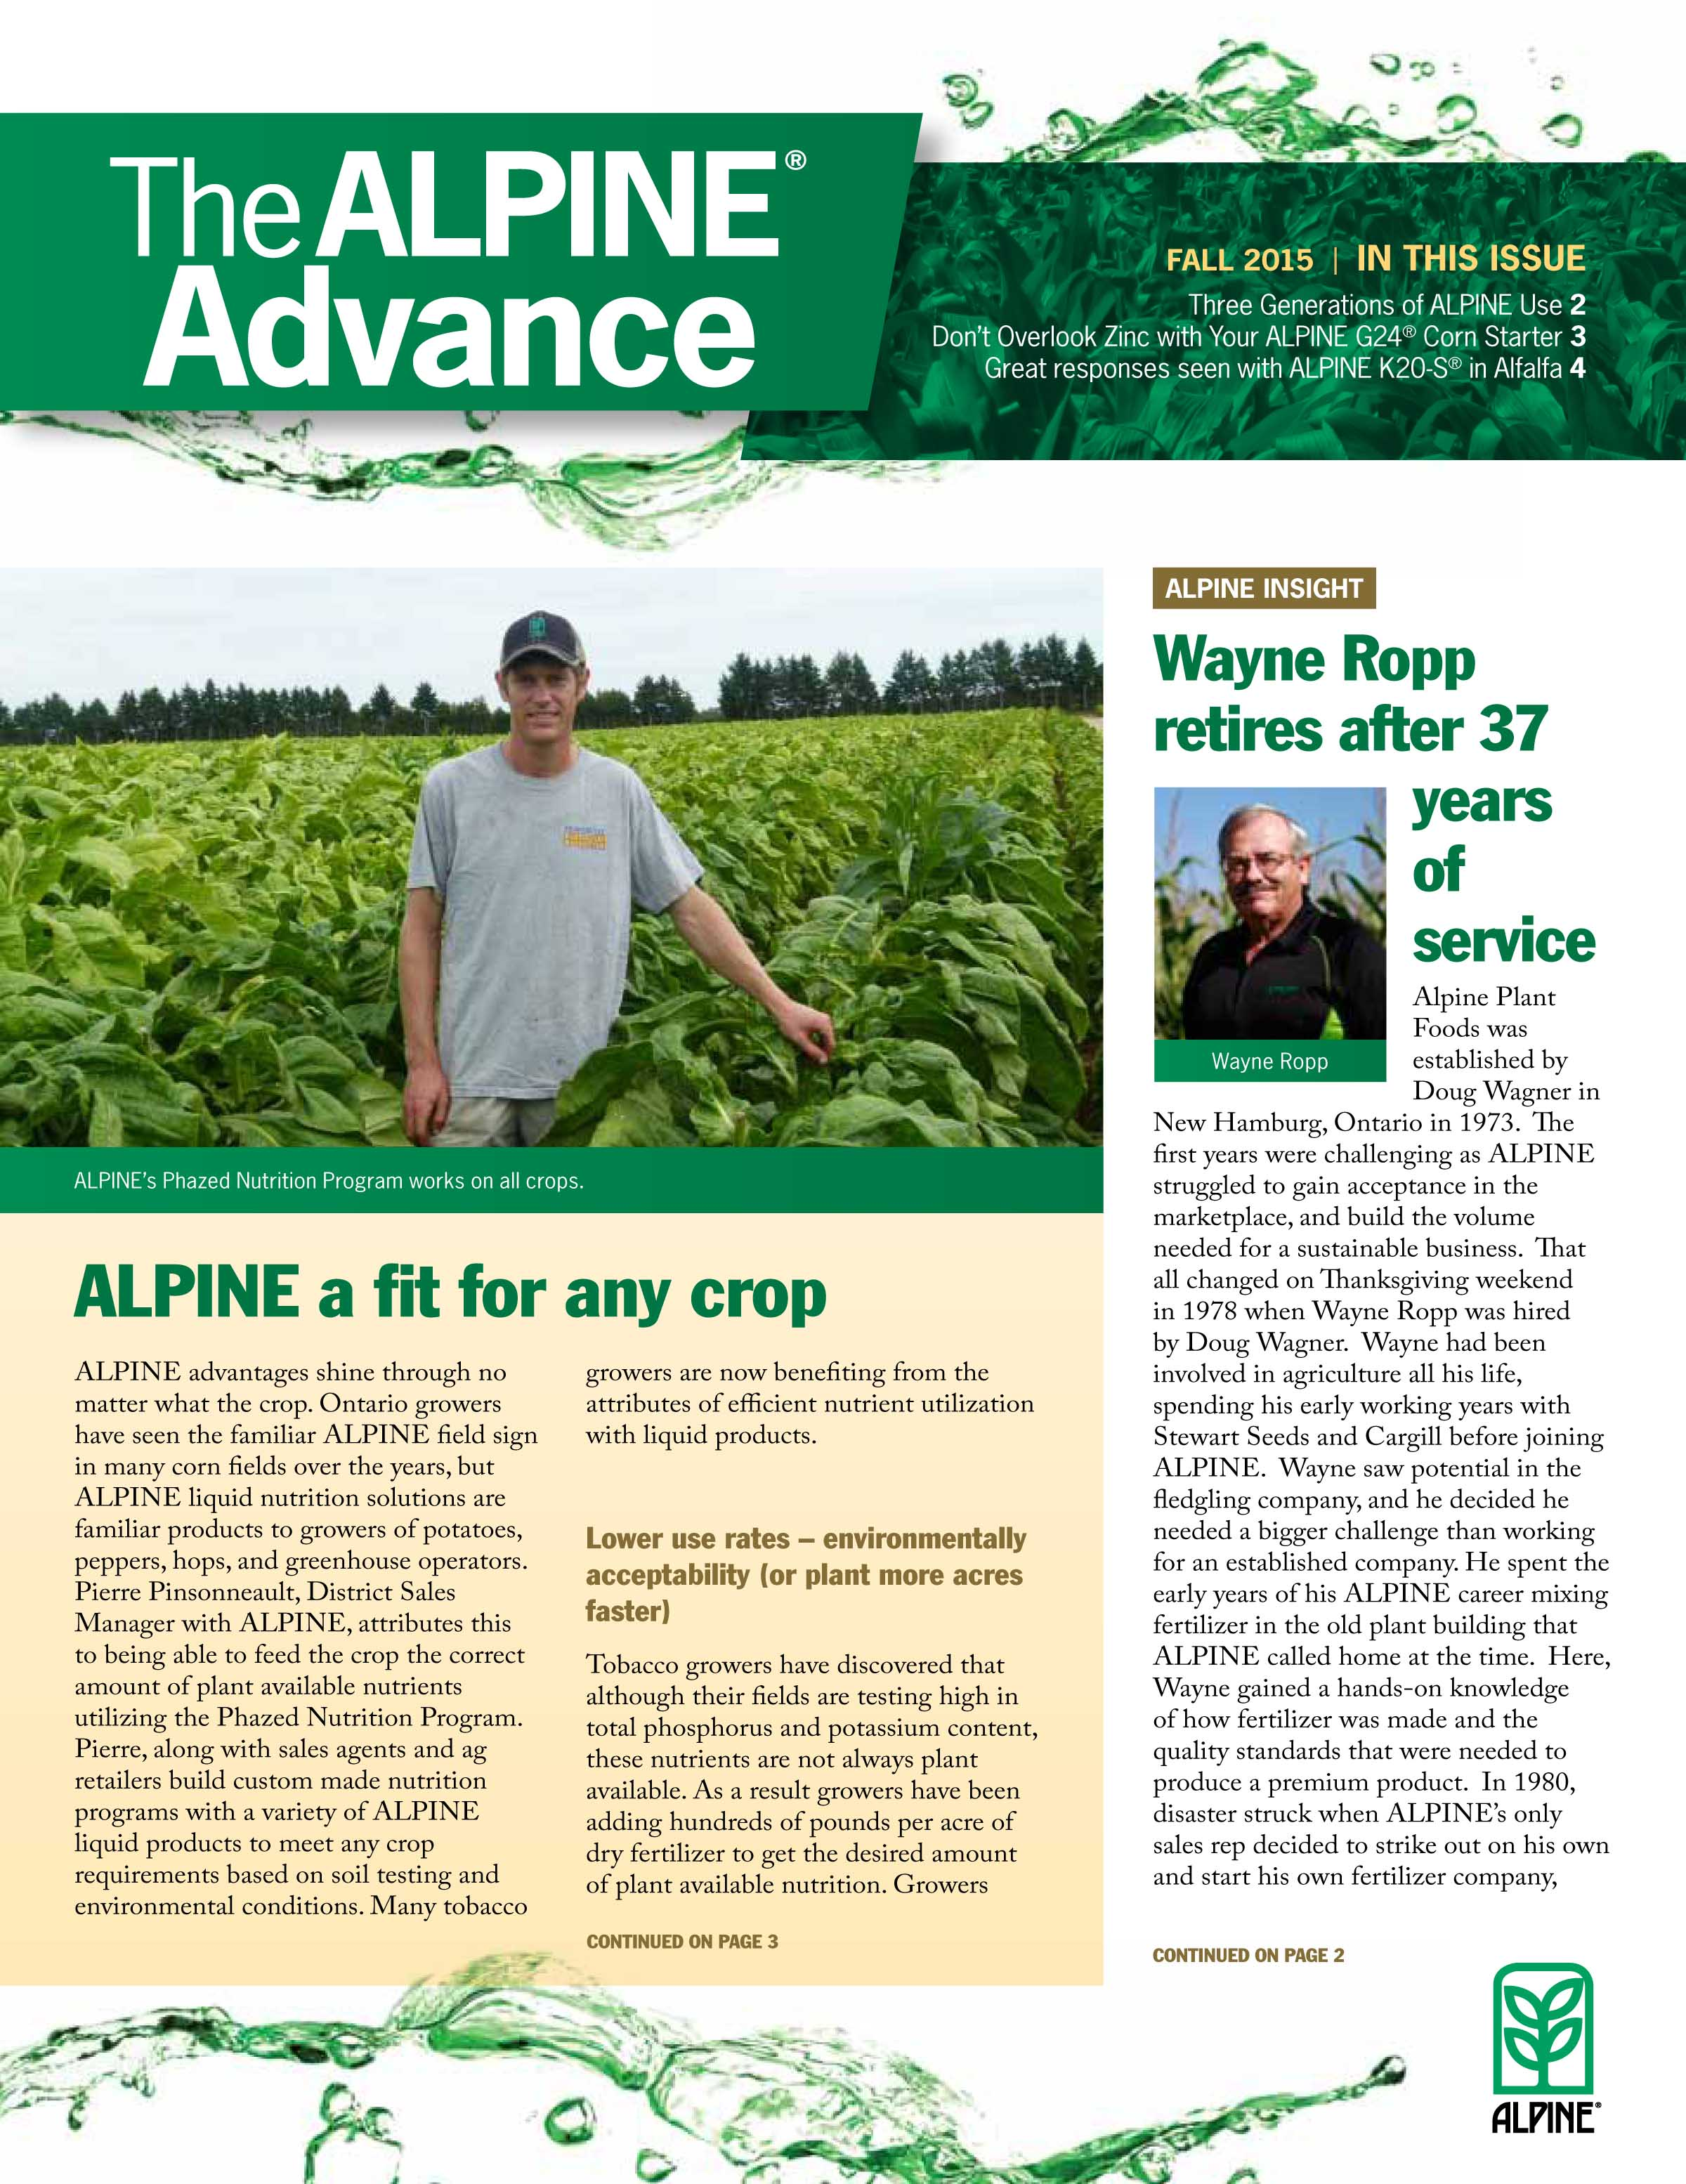 The Alpine Advance Fall 2015